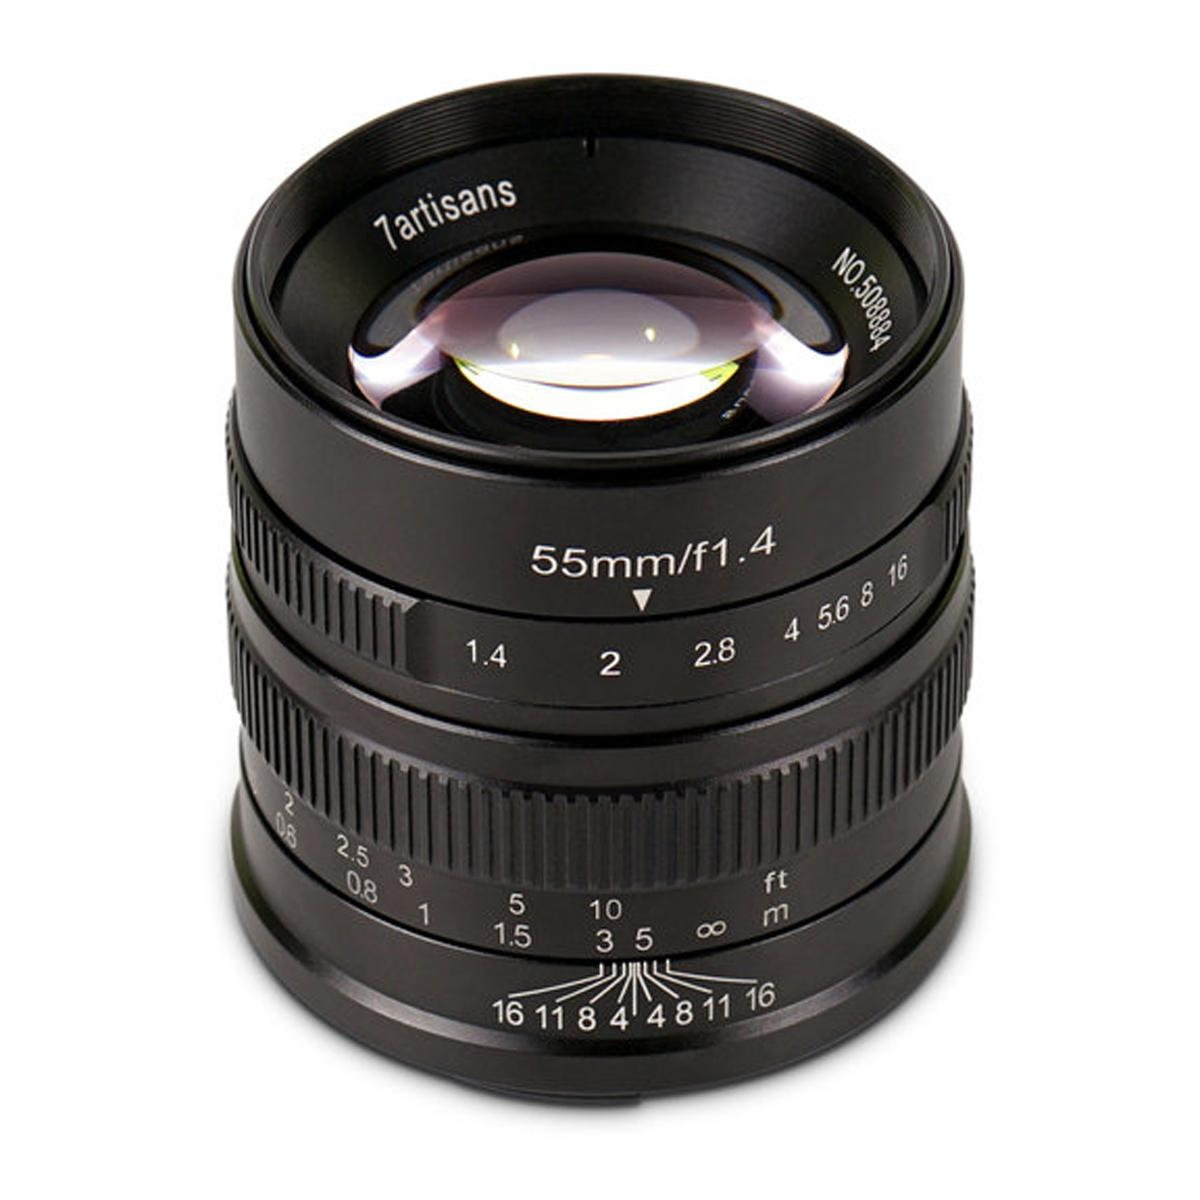 d134f9b6356 7ARTISANS 55MM F1.4 SONY E Lens I Compatible with Sony E Mirrorless Camera I